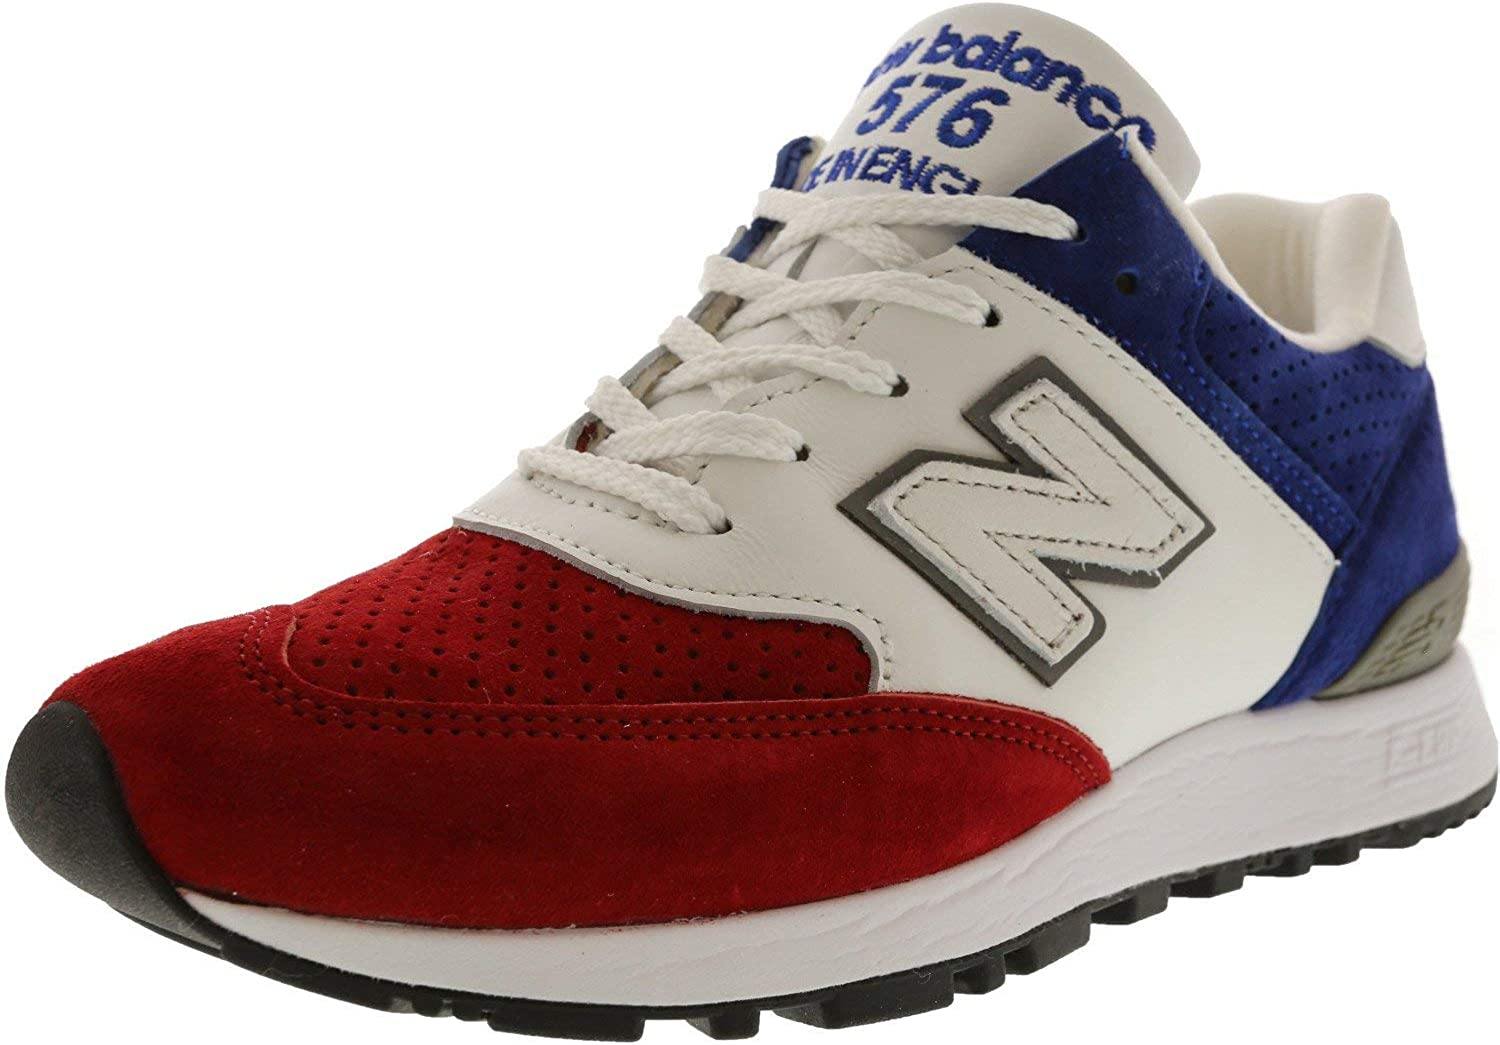 New Balance Women's W576 Ankle-High Suede Fashion Sneaker